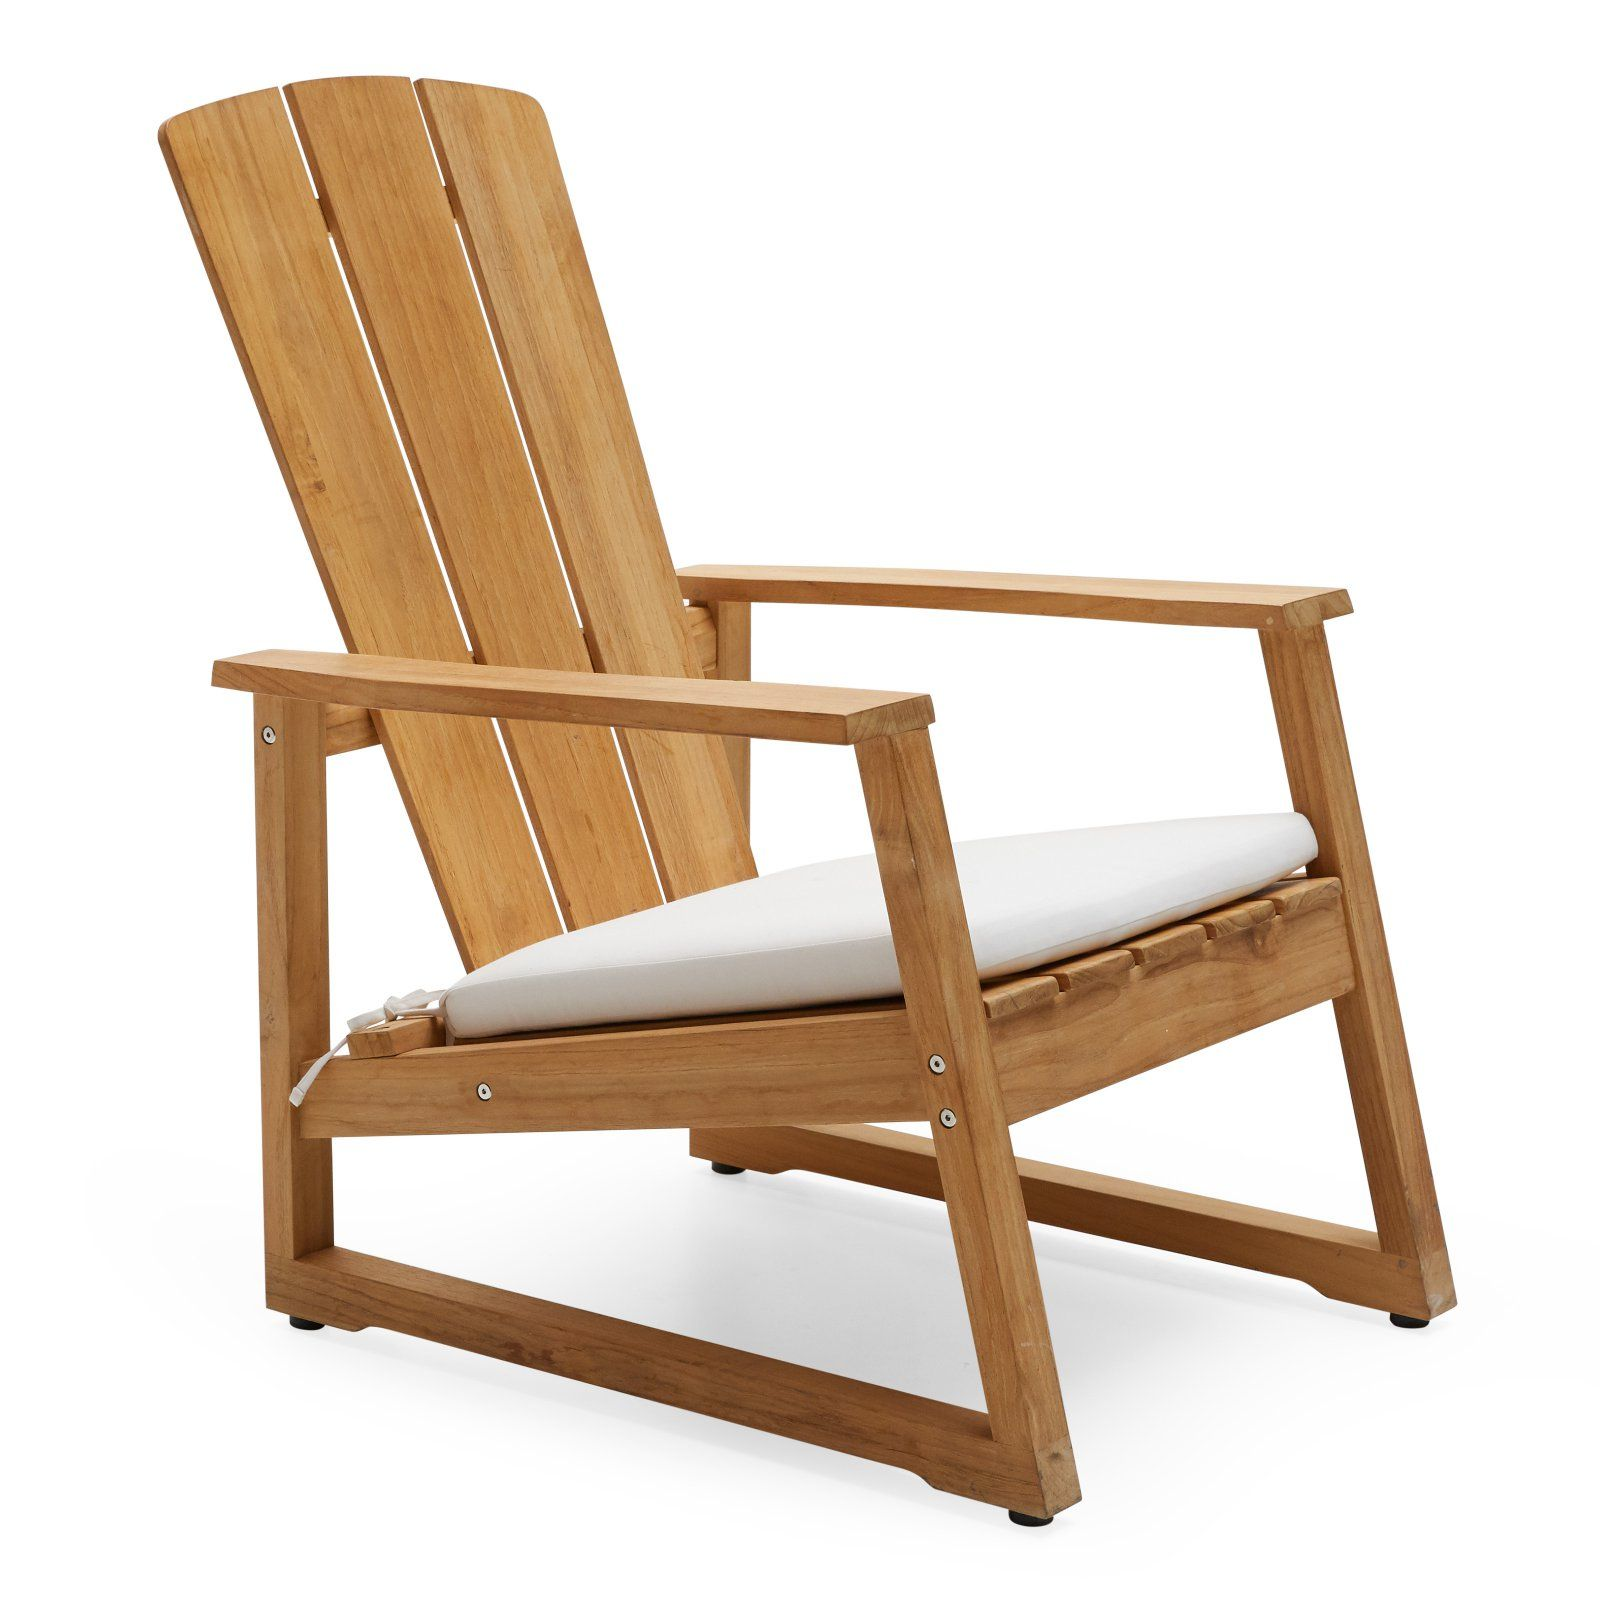 Modrn Scandinavian Teak Adirondack Chair With Sunbrella Cushion